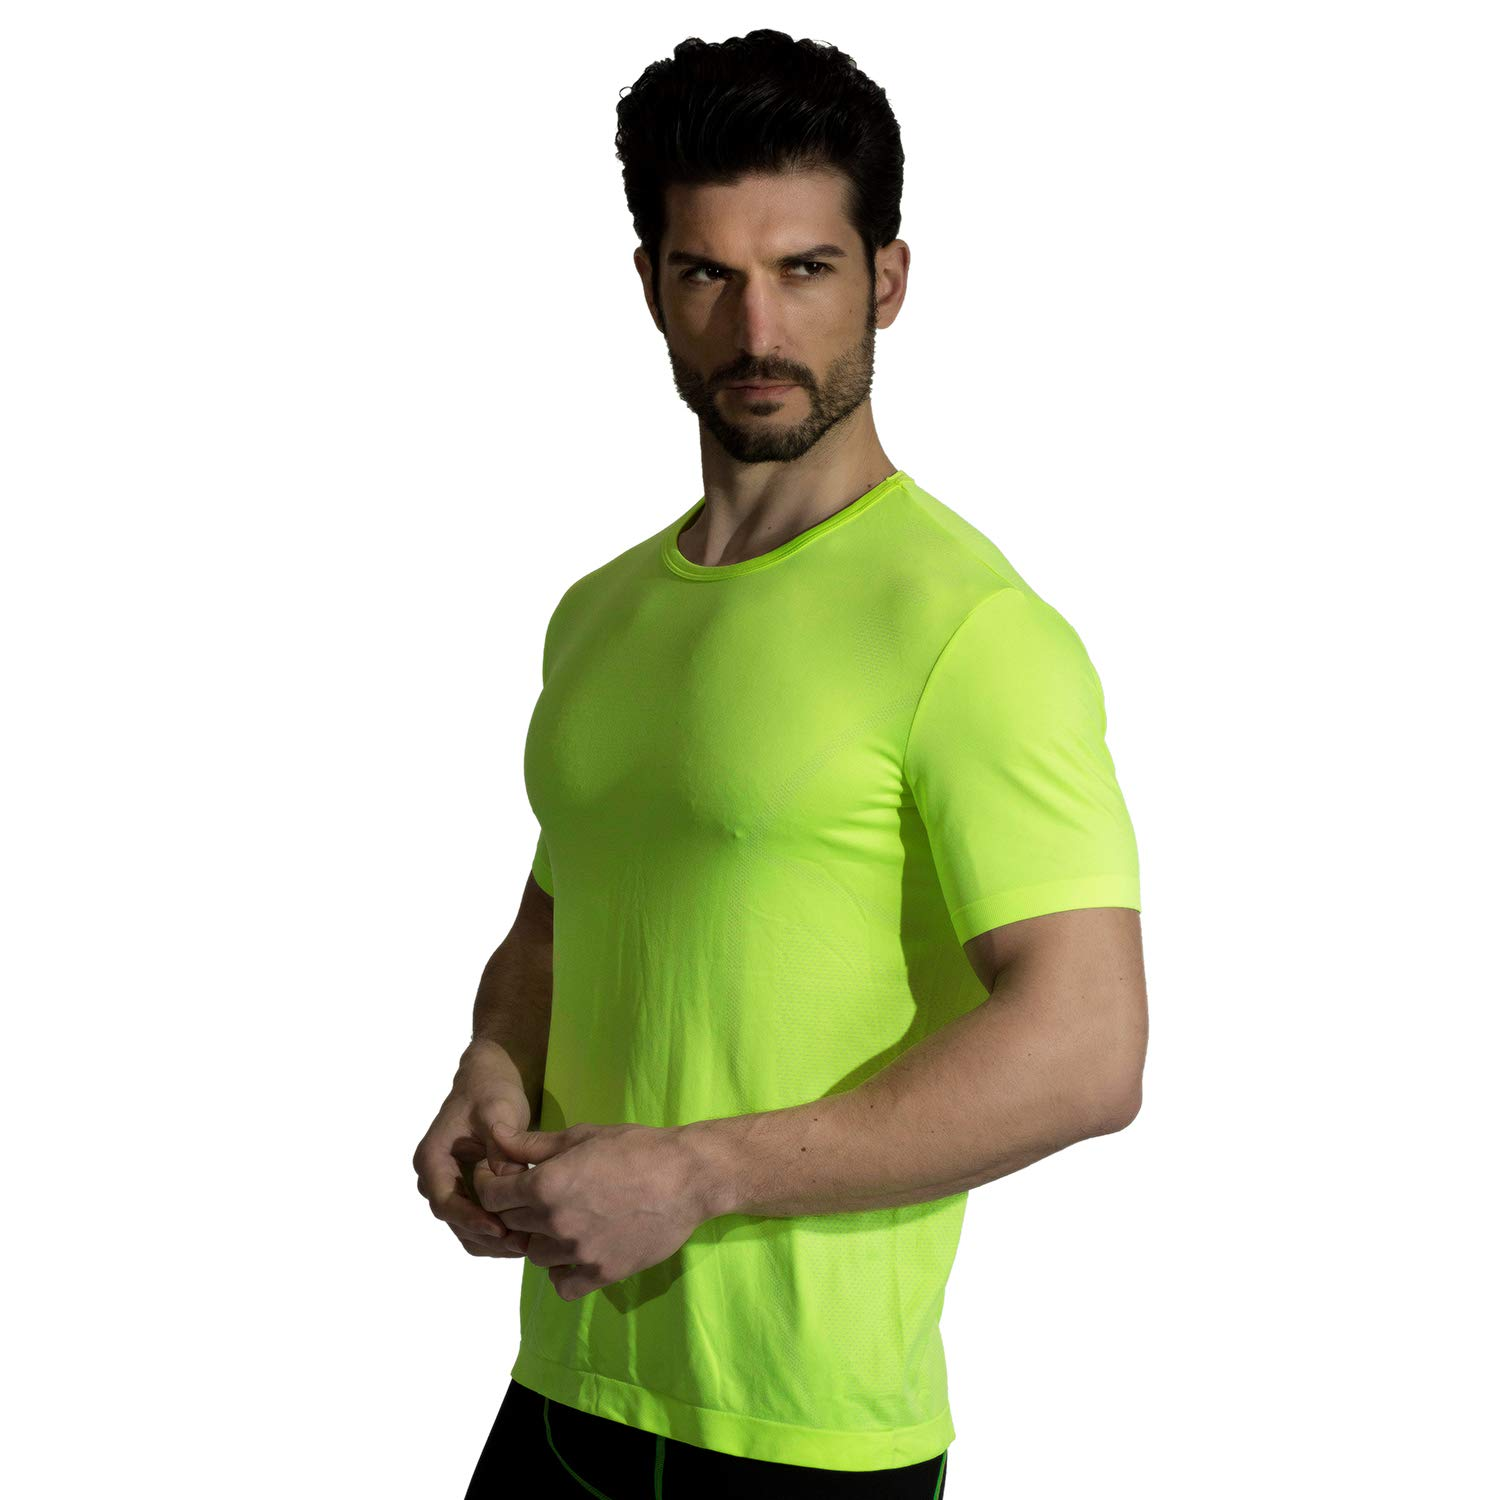 +MD Mens Cool Dry Short Sleeve T-Shirts Moisture Wicking Athletic Graphic T Shirts Crew Neck Workout Shirts